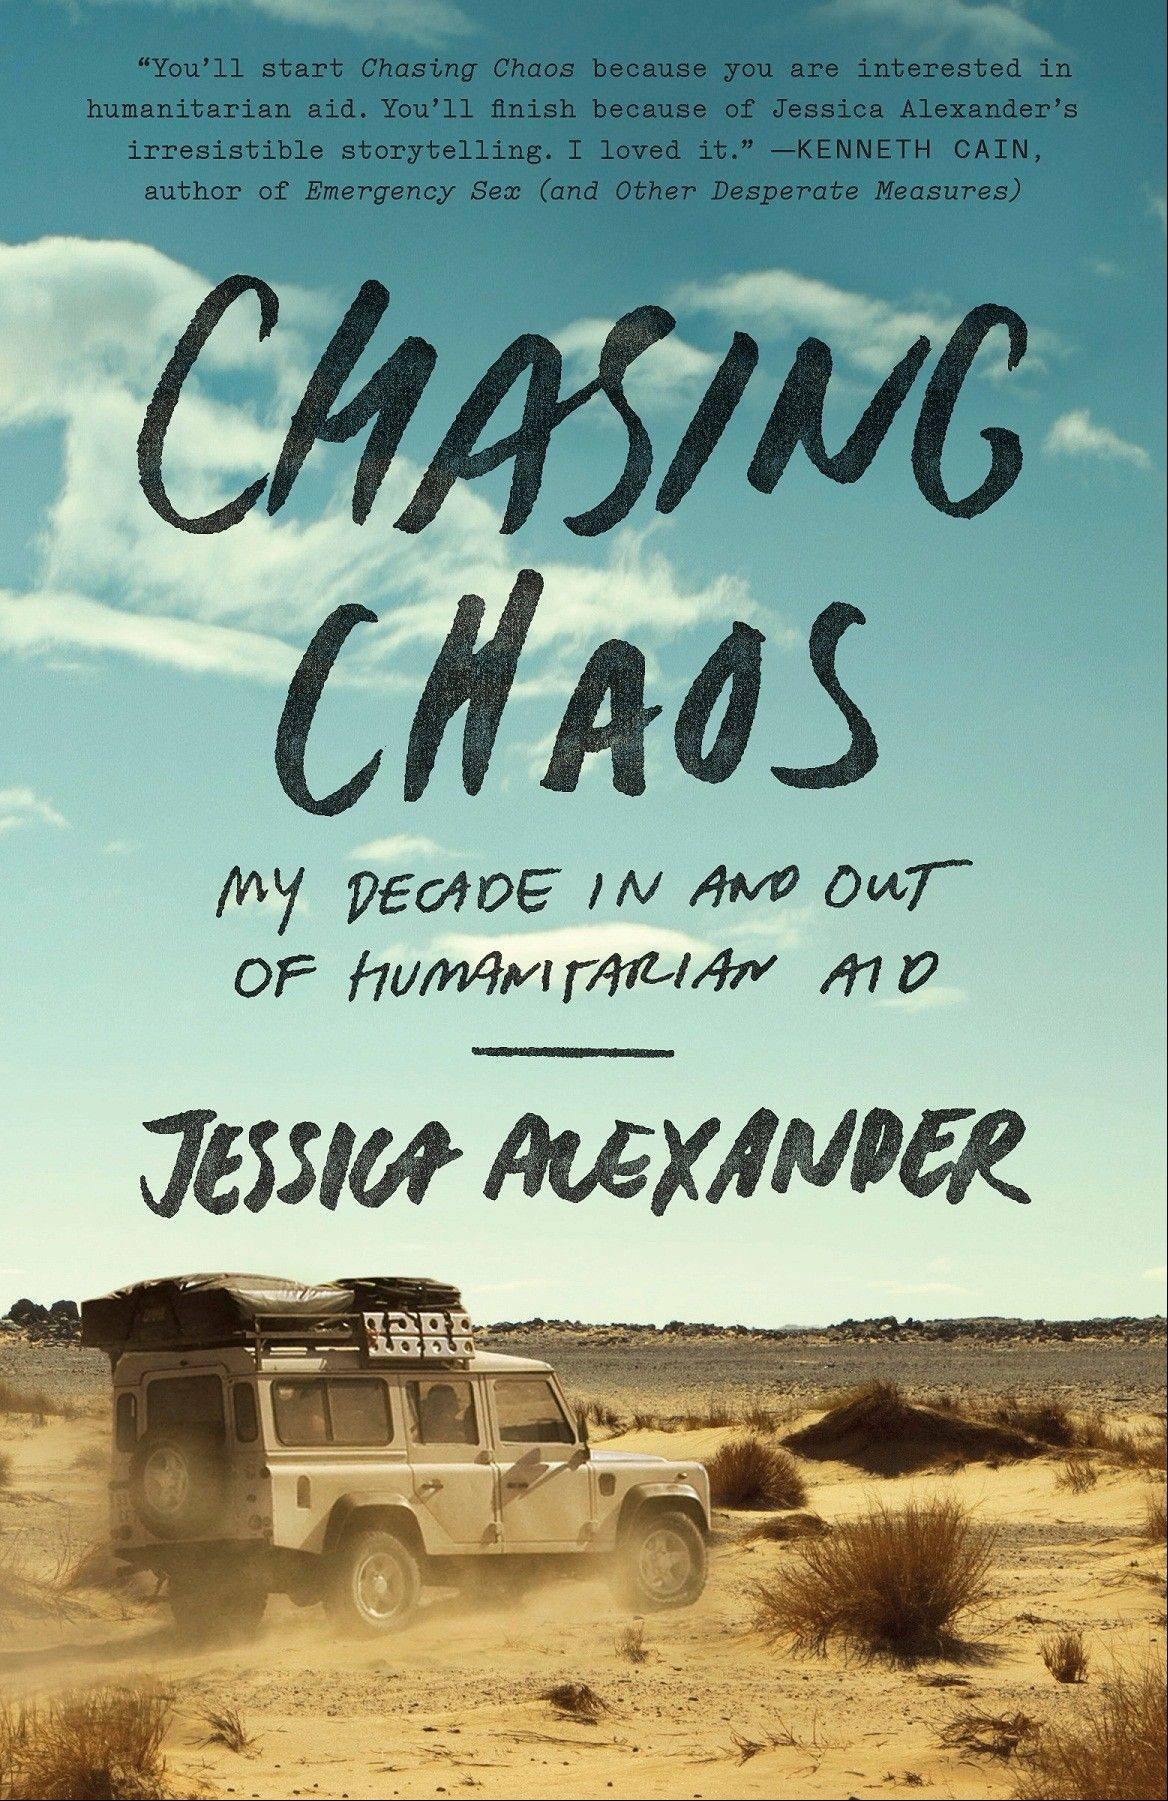 """Chasing Chaos: My Decade In and Out of Humanitarian Aid"" by Jessica Alexander"